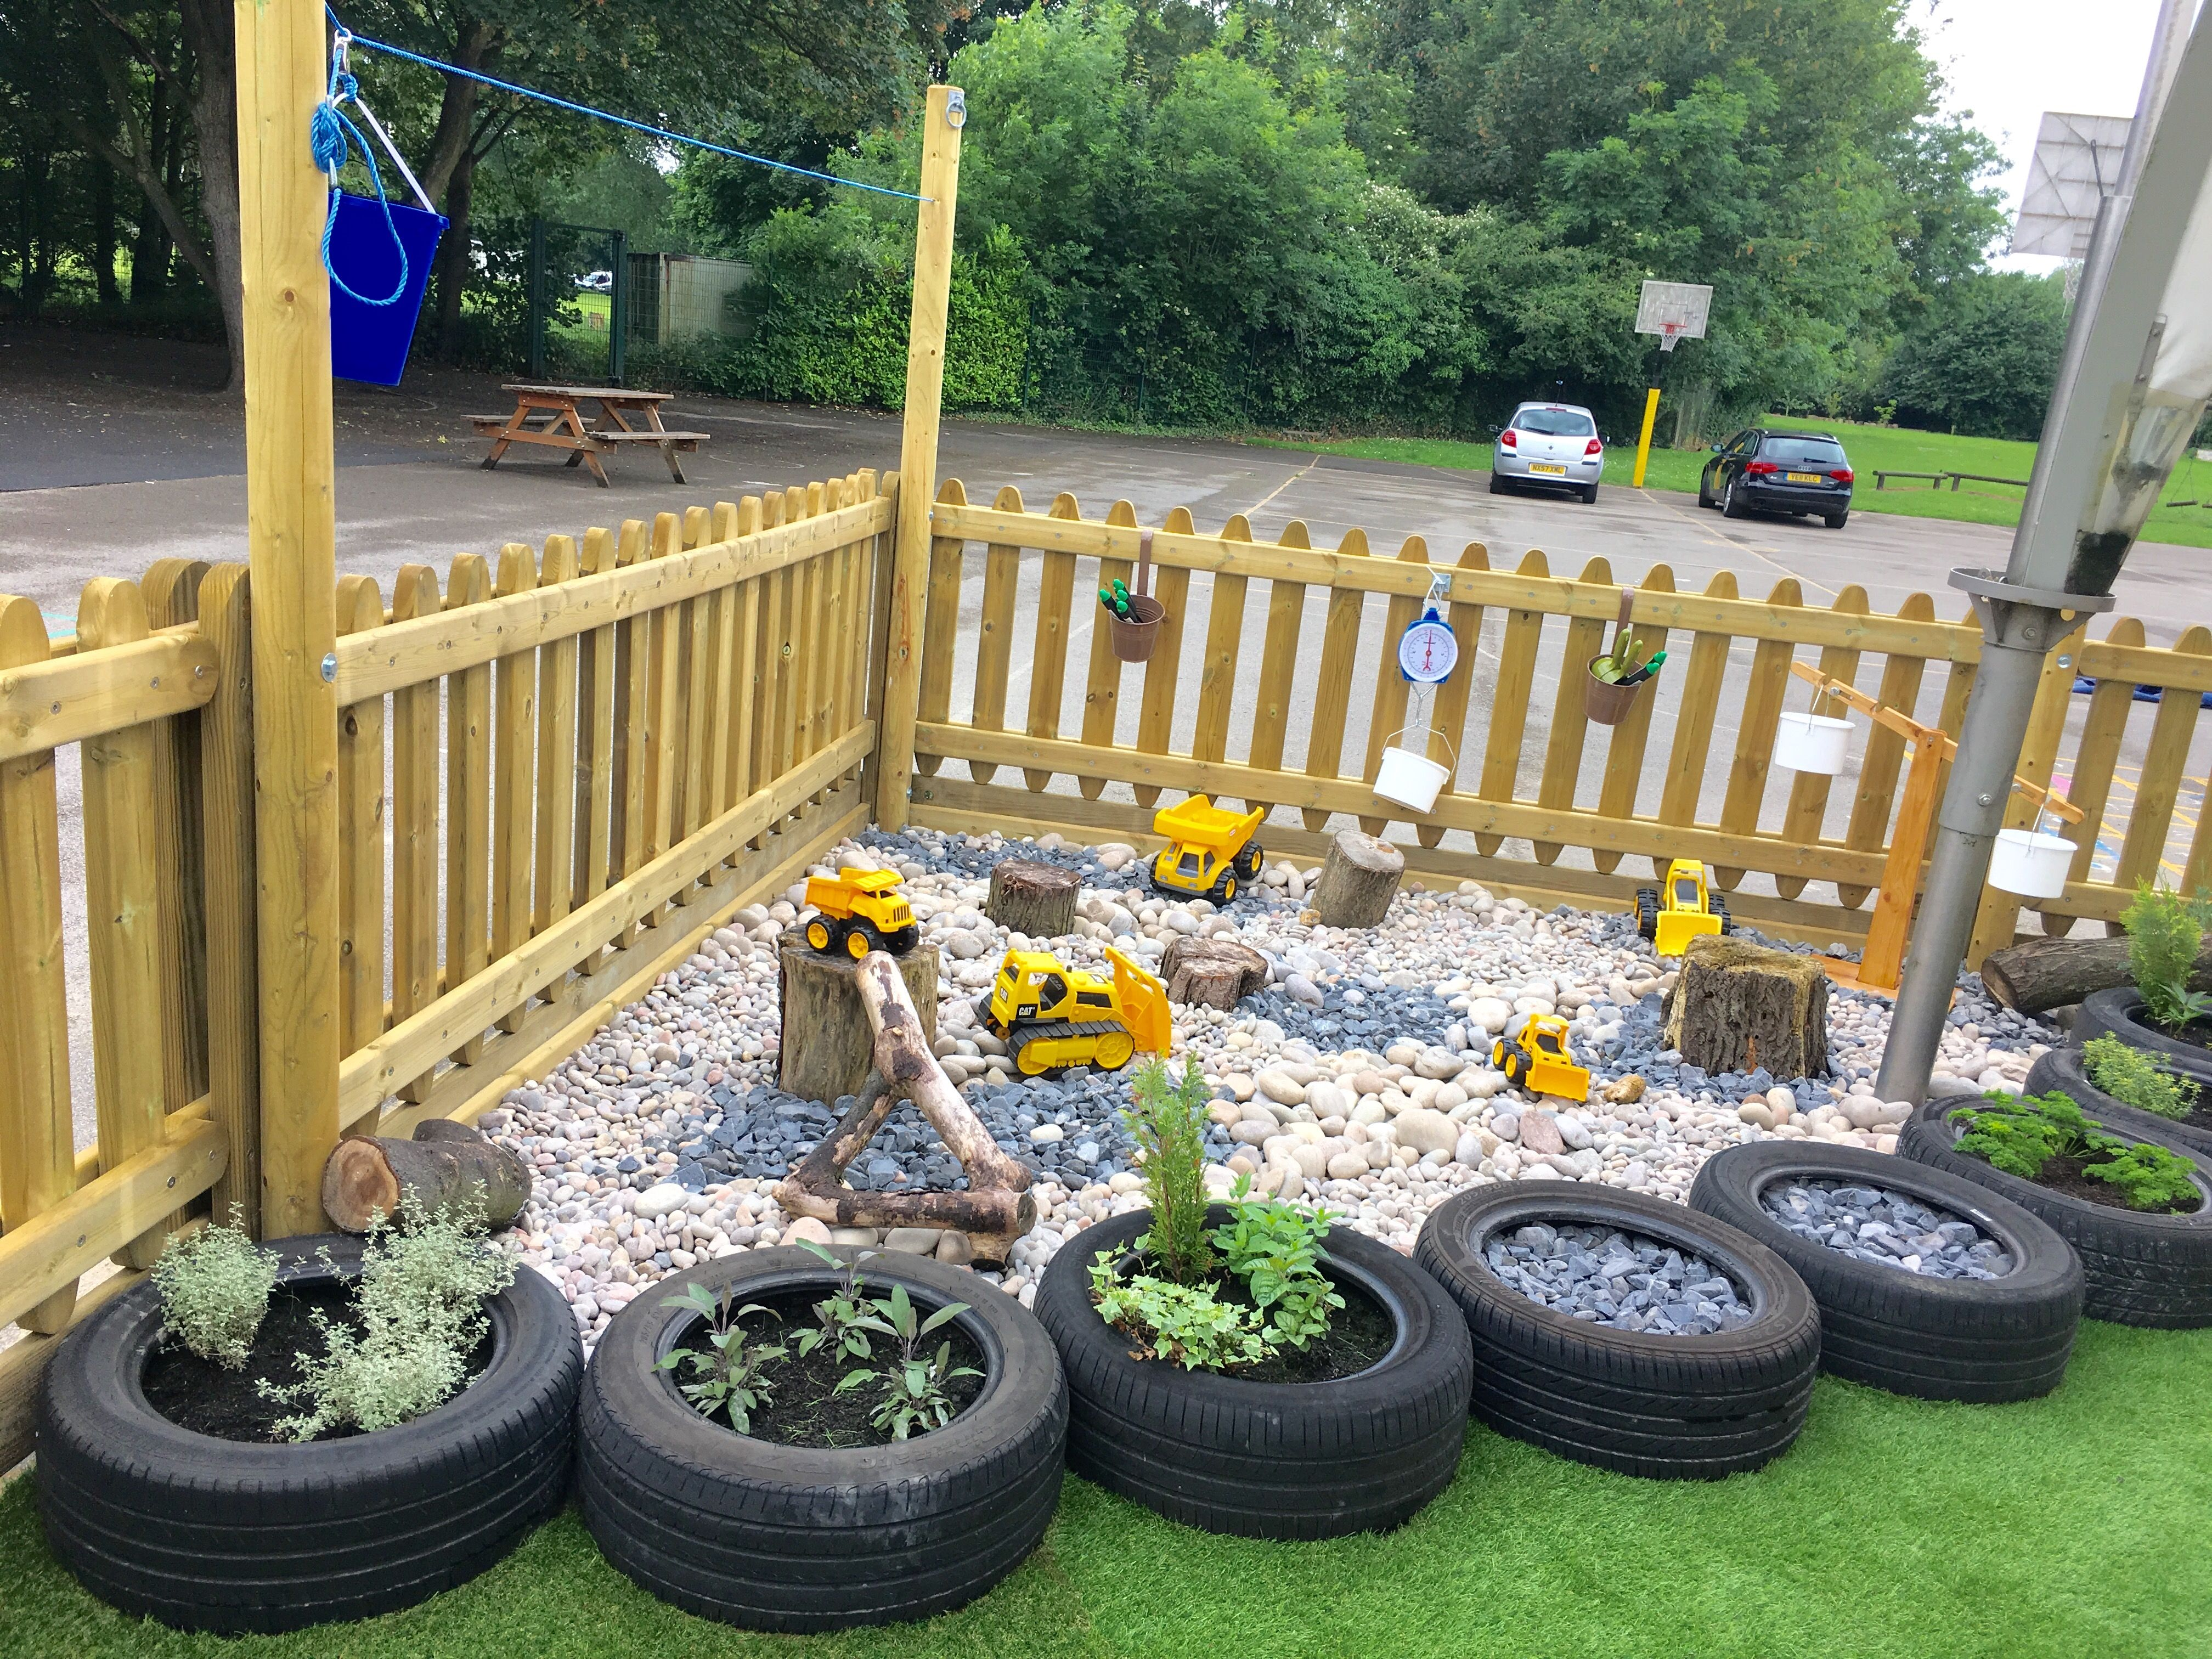 Pebble Digging Pit Construction Area Sensory Garden And